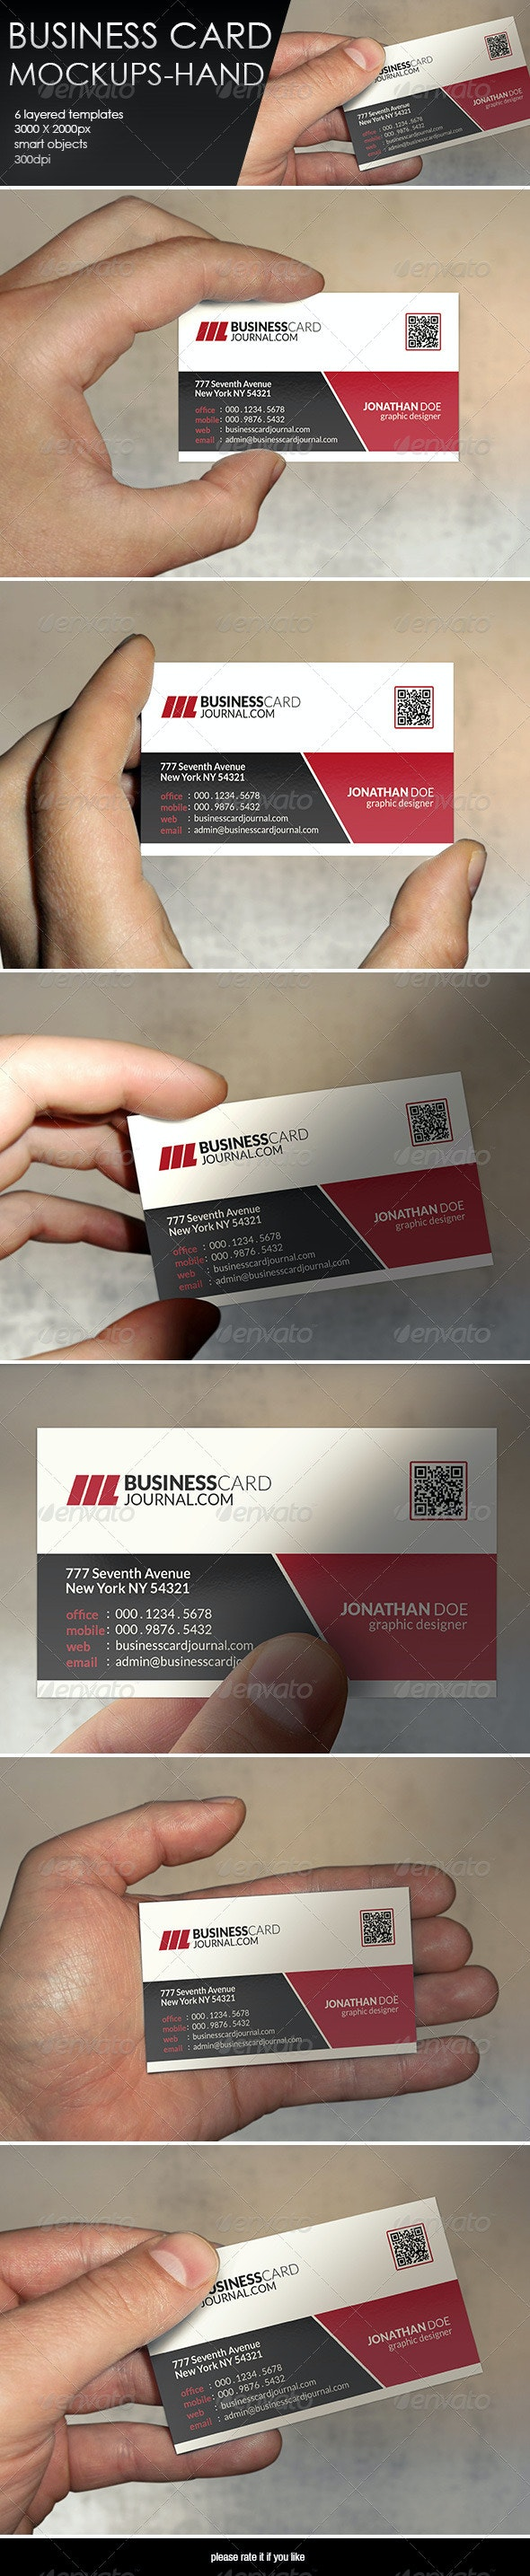 Business Card MockUp-Hand - Business Cards Print